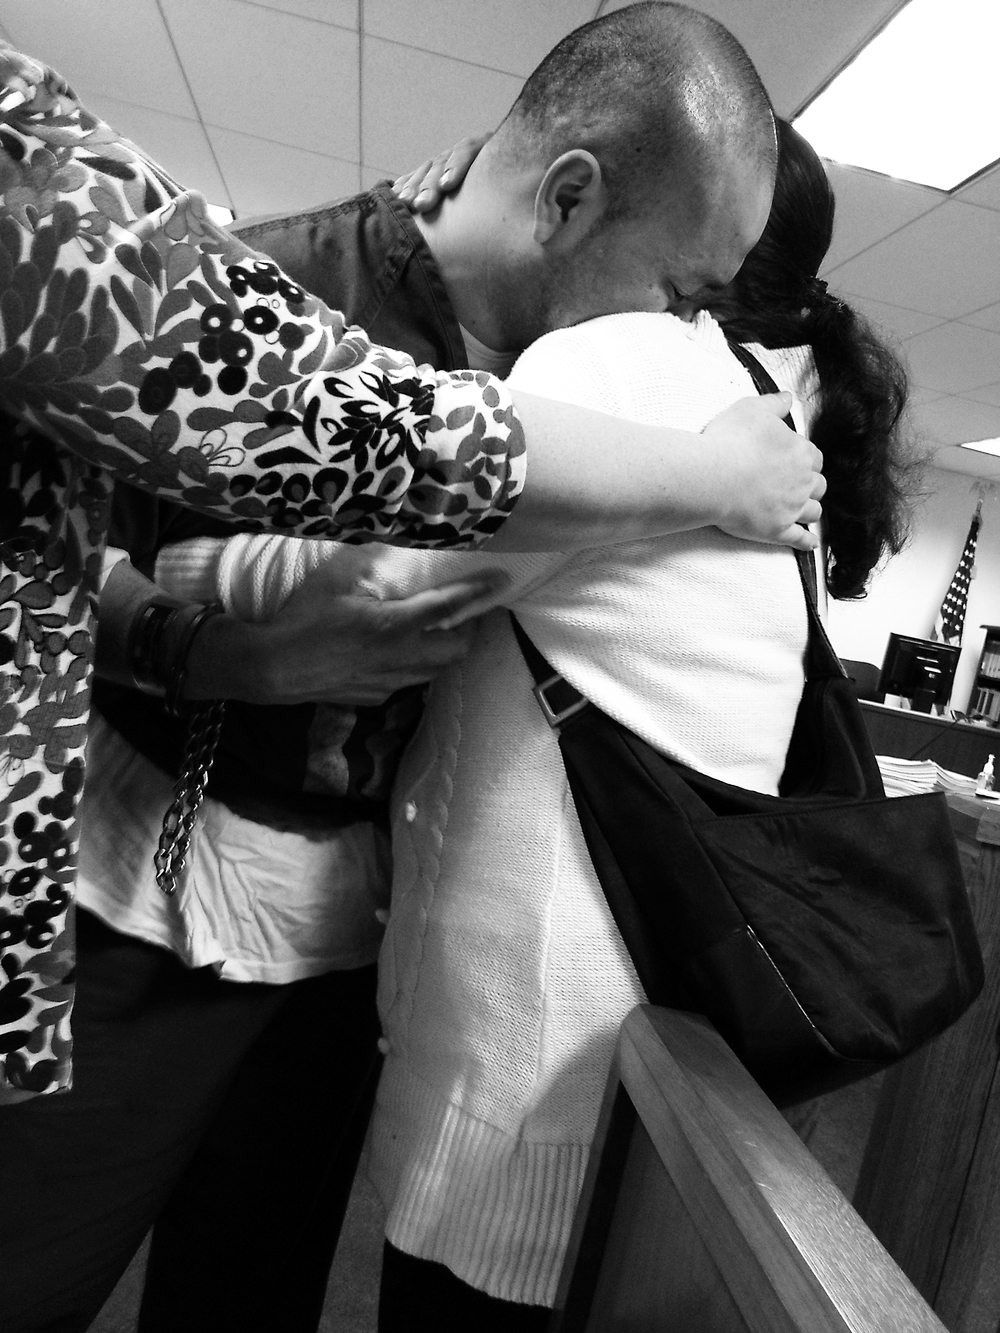 The practice of shackling immigrant detainees in courts is being challenged by immigrants' rights advocates. In this picture, he shares a momentary embrace with his mother.